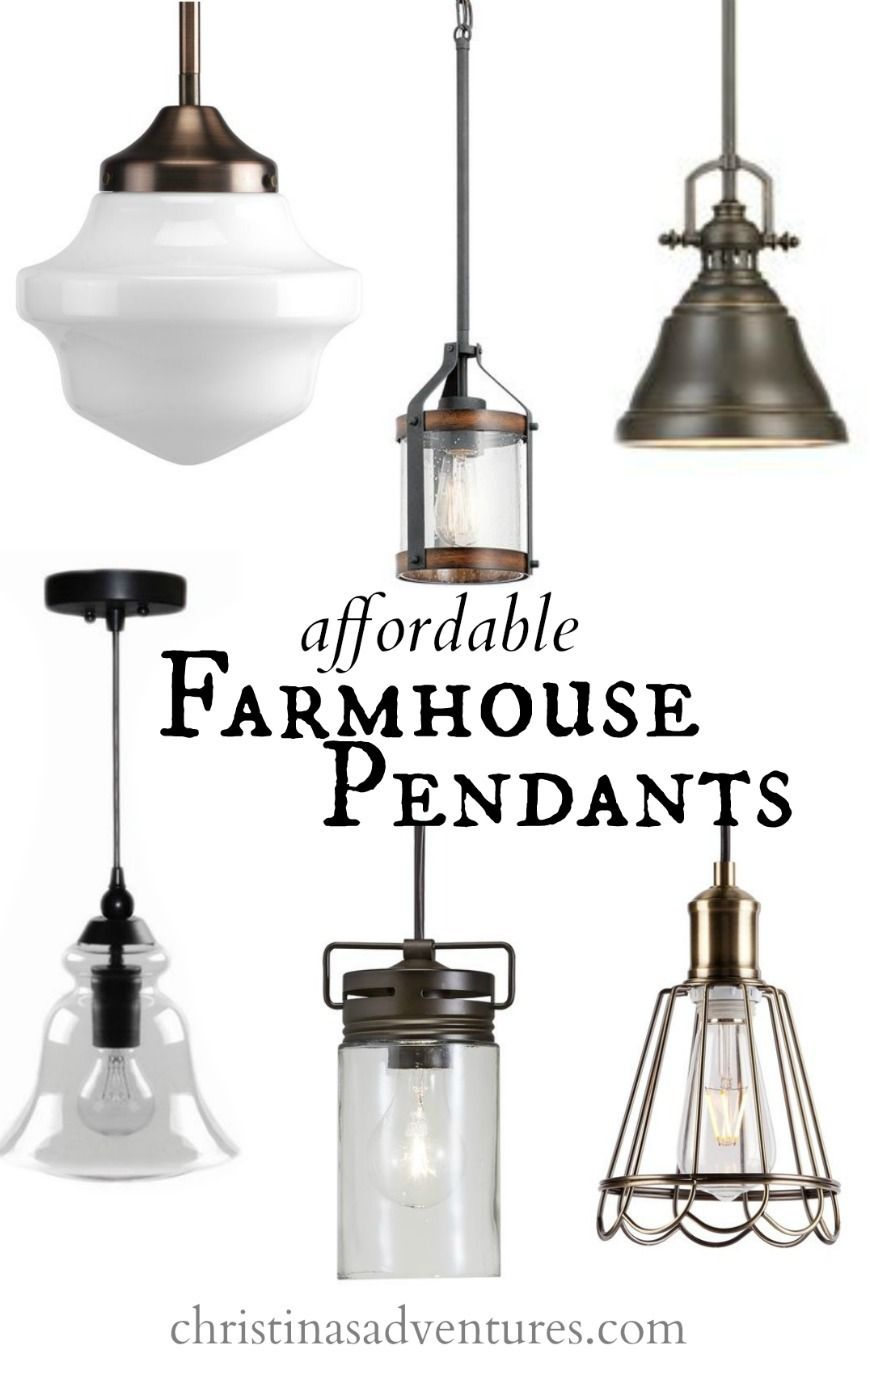 Affordable kitchen design elements farmhouse pendant lighting lighting is an easy inexpensive way to transform the style and ambiance of a space mozeypictures Image collections